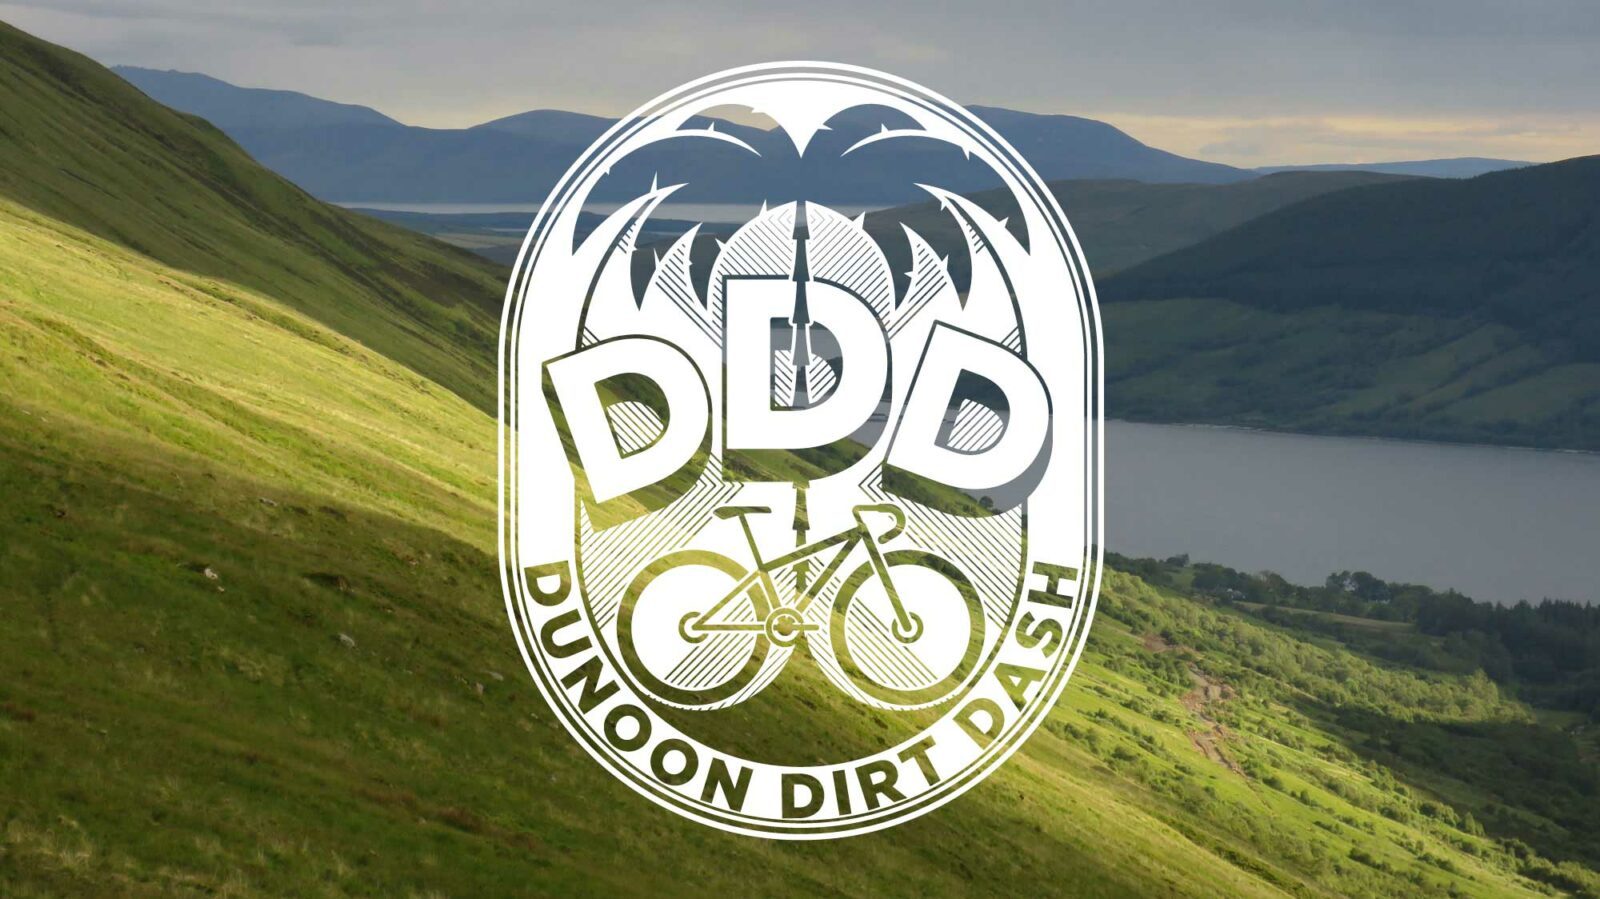 Dundoon Dirt Dash